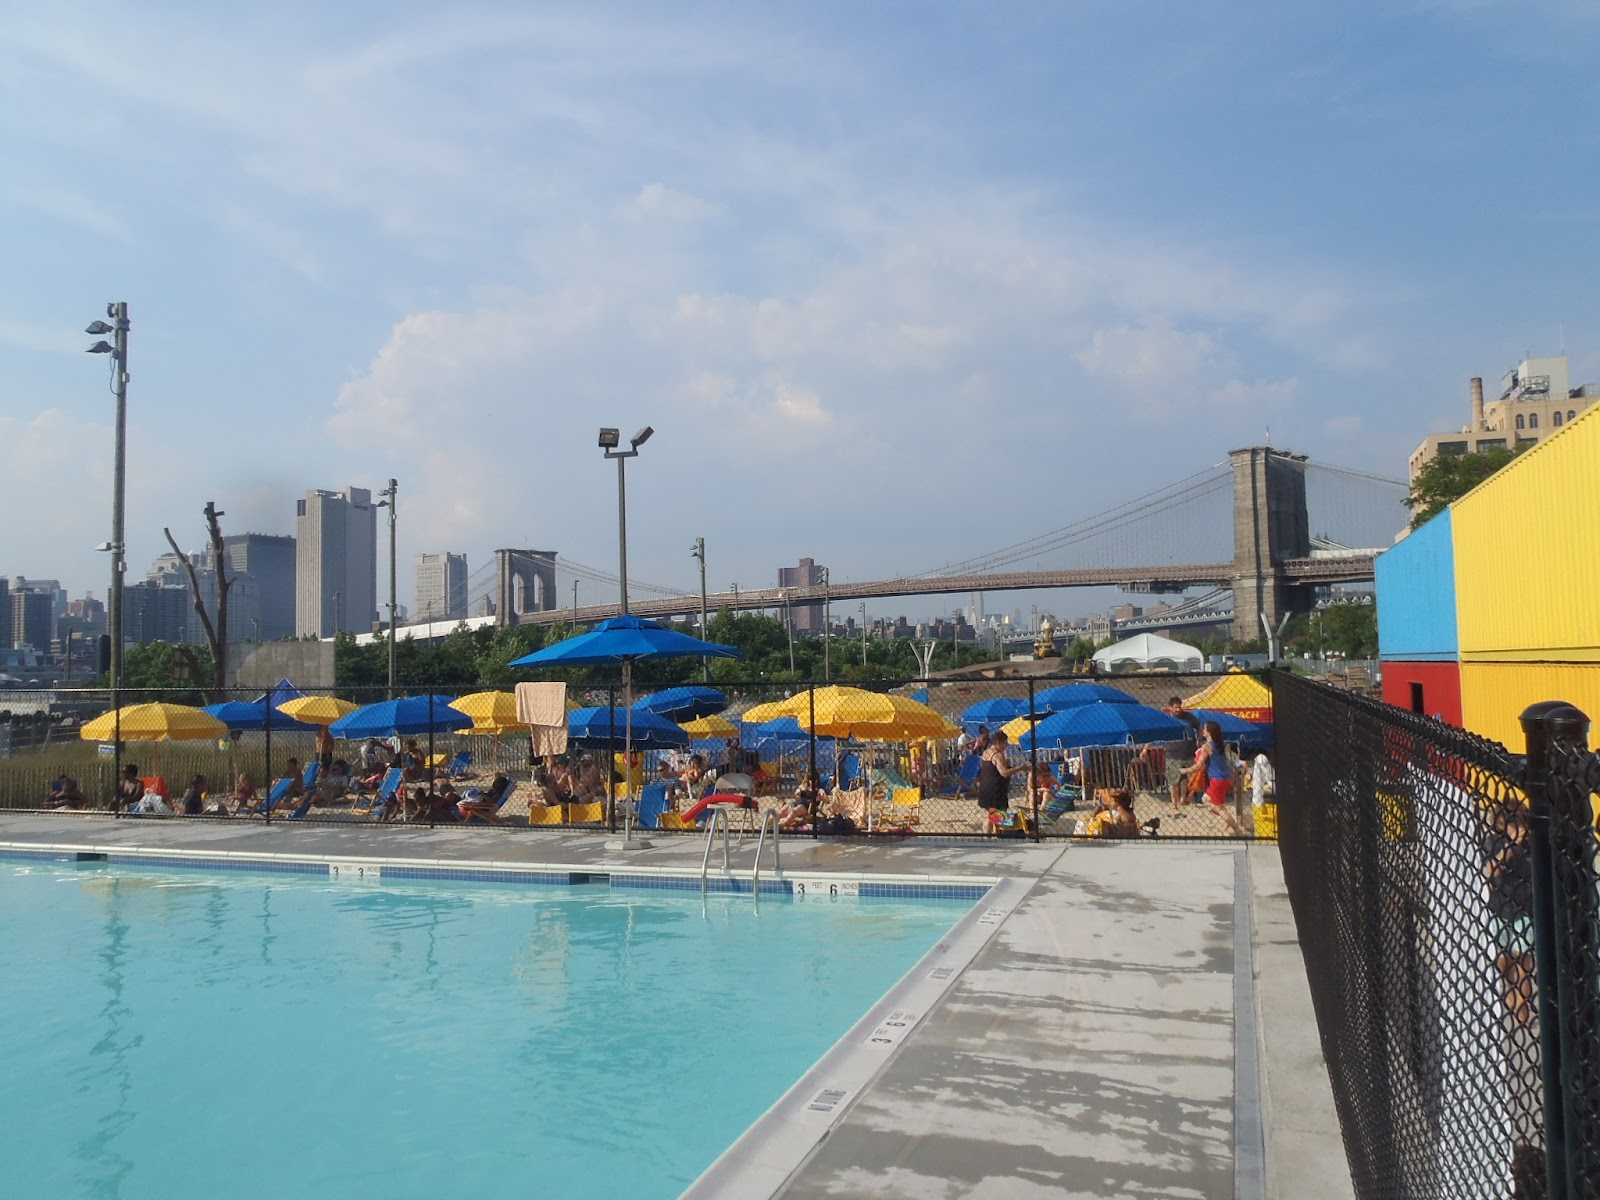 Australian Abroad Brooklyn Bridge Park Beach And Pop Up Pool